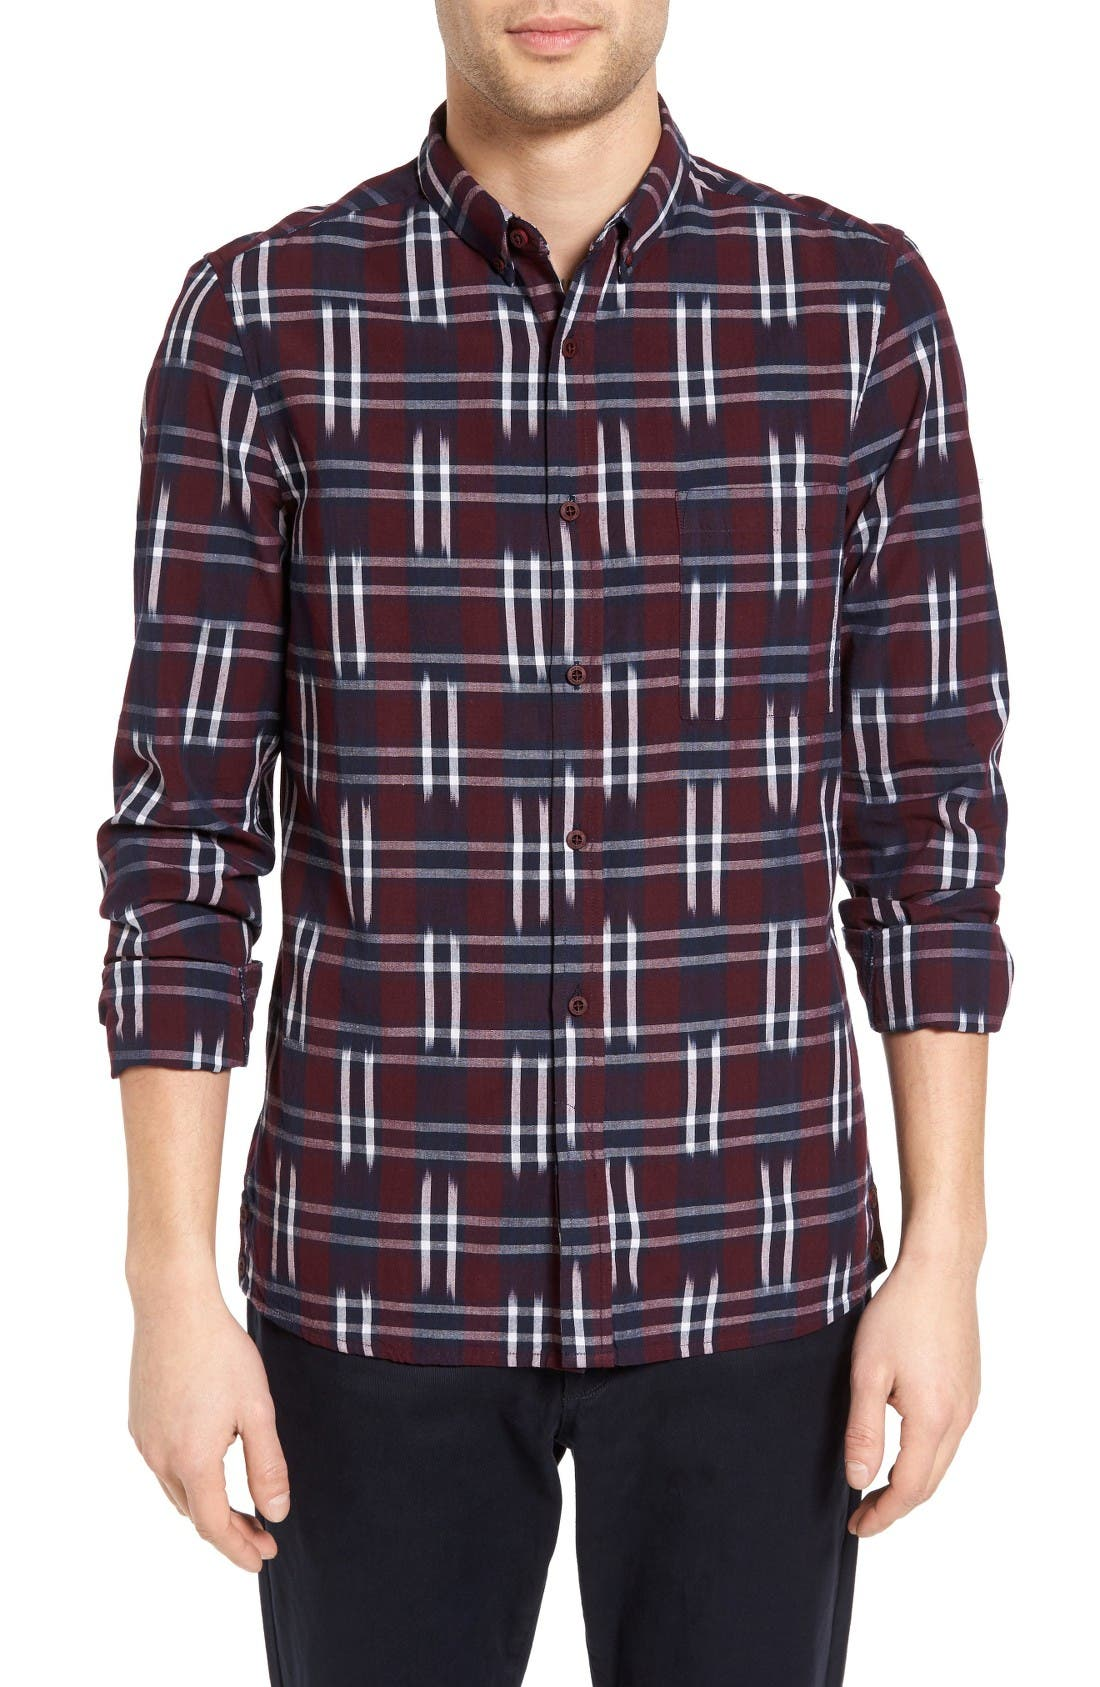 Alternate Image 1 Selected - French Connection Slim Fit Ikat Check Sport Shirt